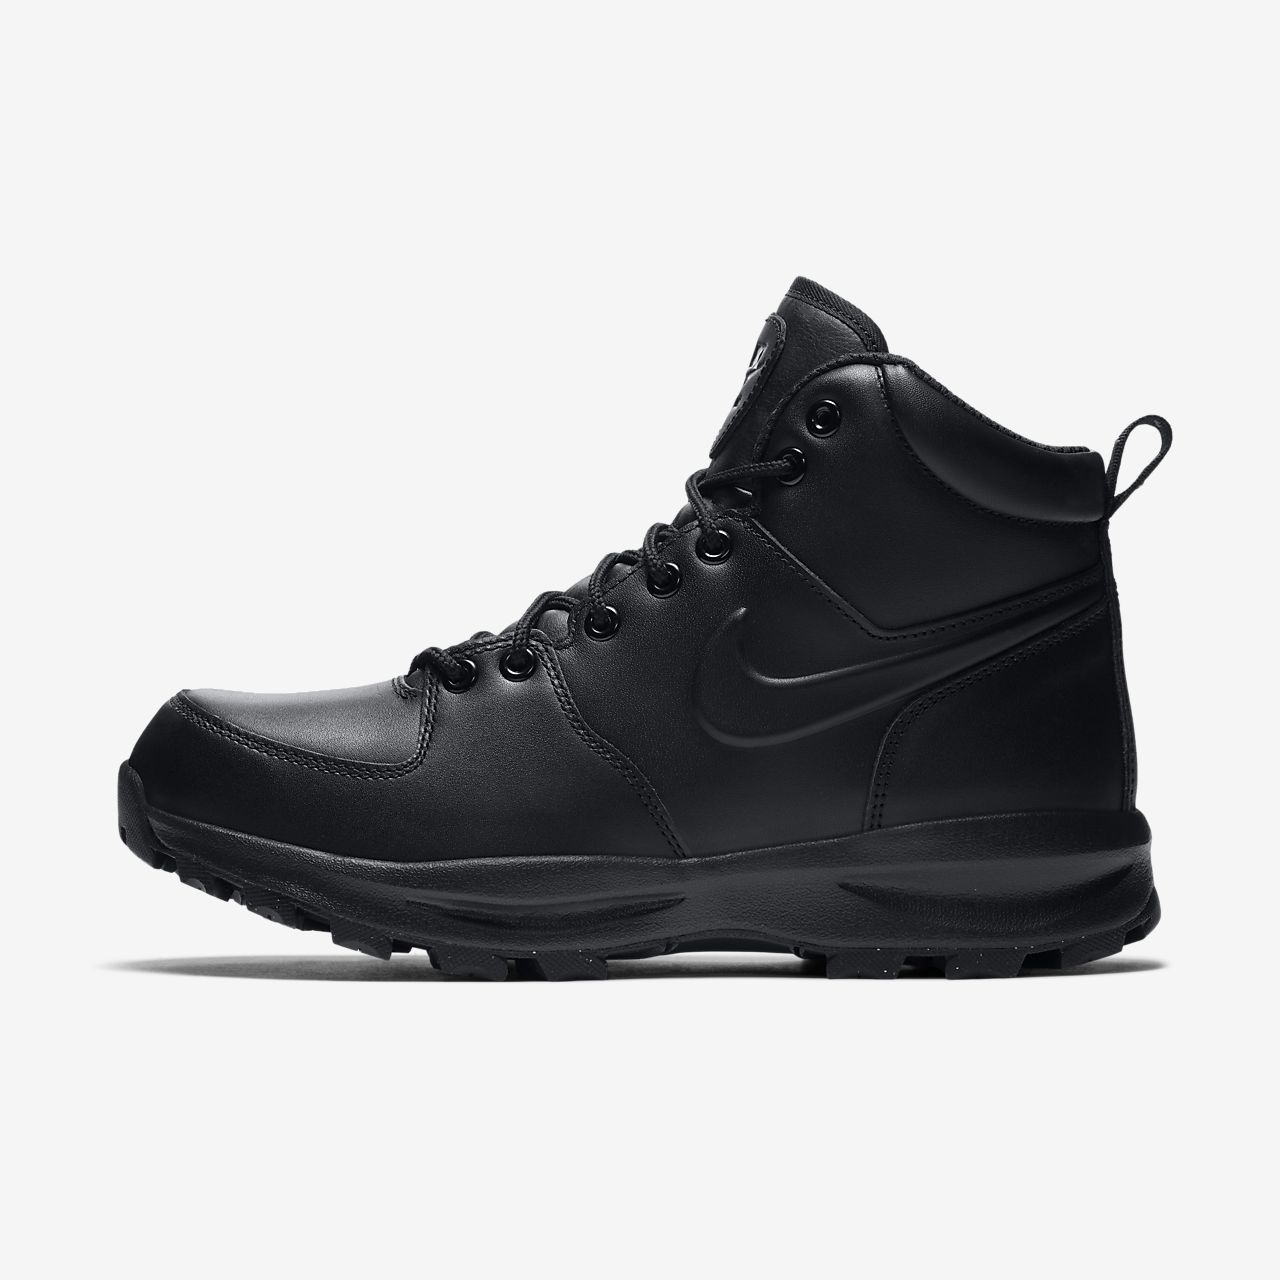 brand new 8c7f1 1a92f Low Resolution Nike Manoa Herenboots Nike Manoa Herenboots